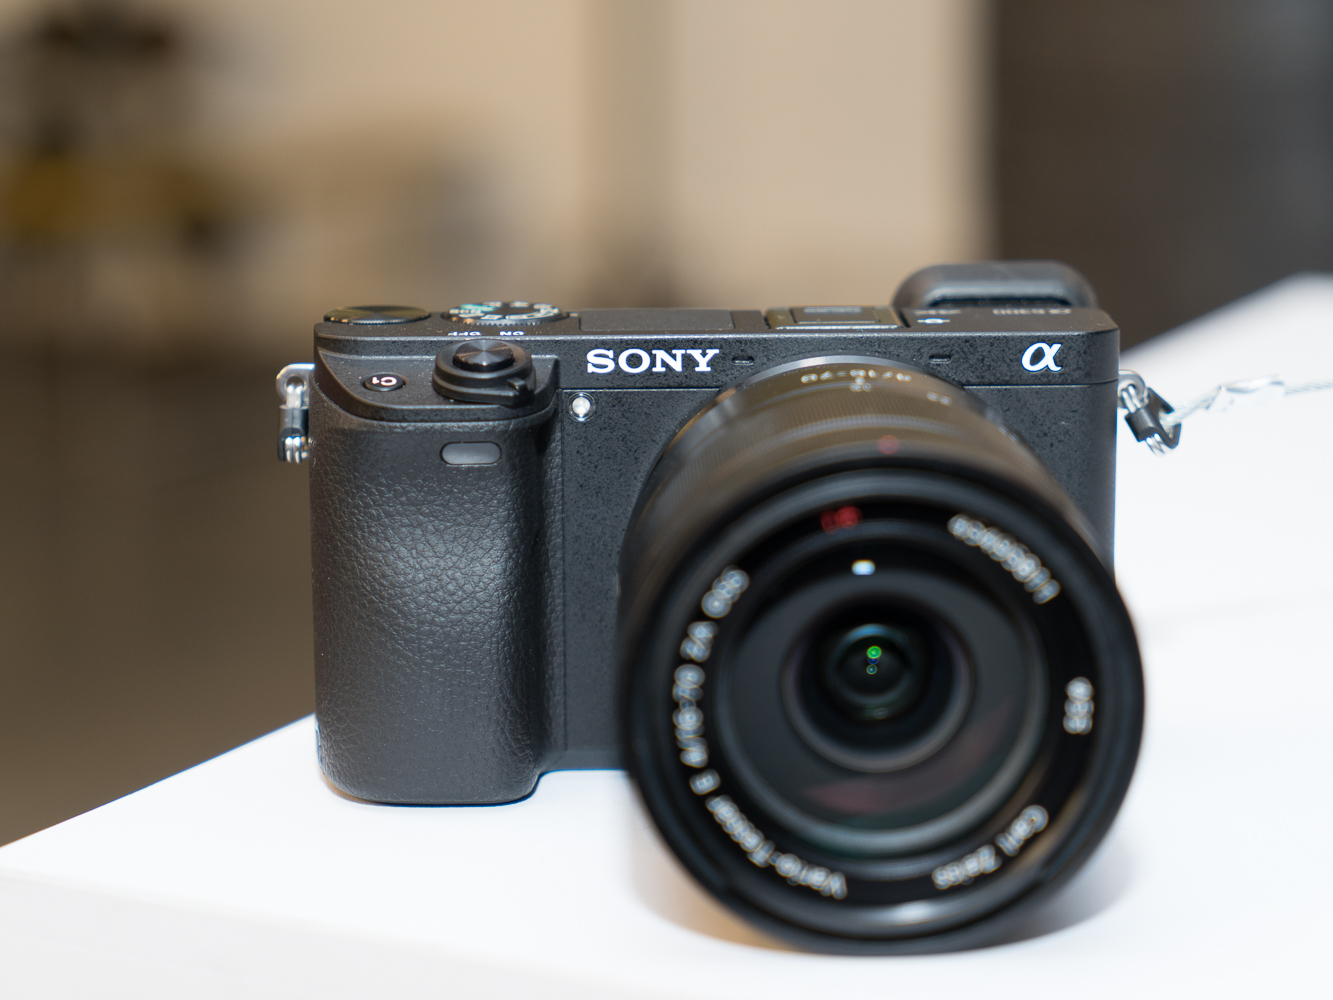 Sony A6300 Release Date, Price and Specs - CNET